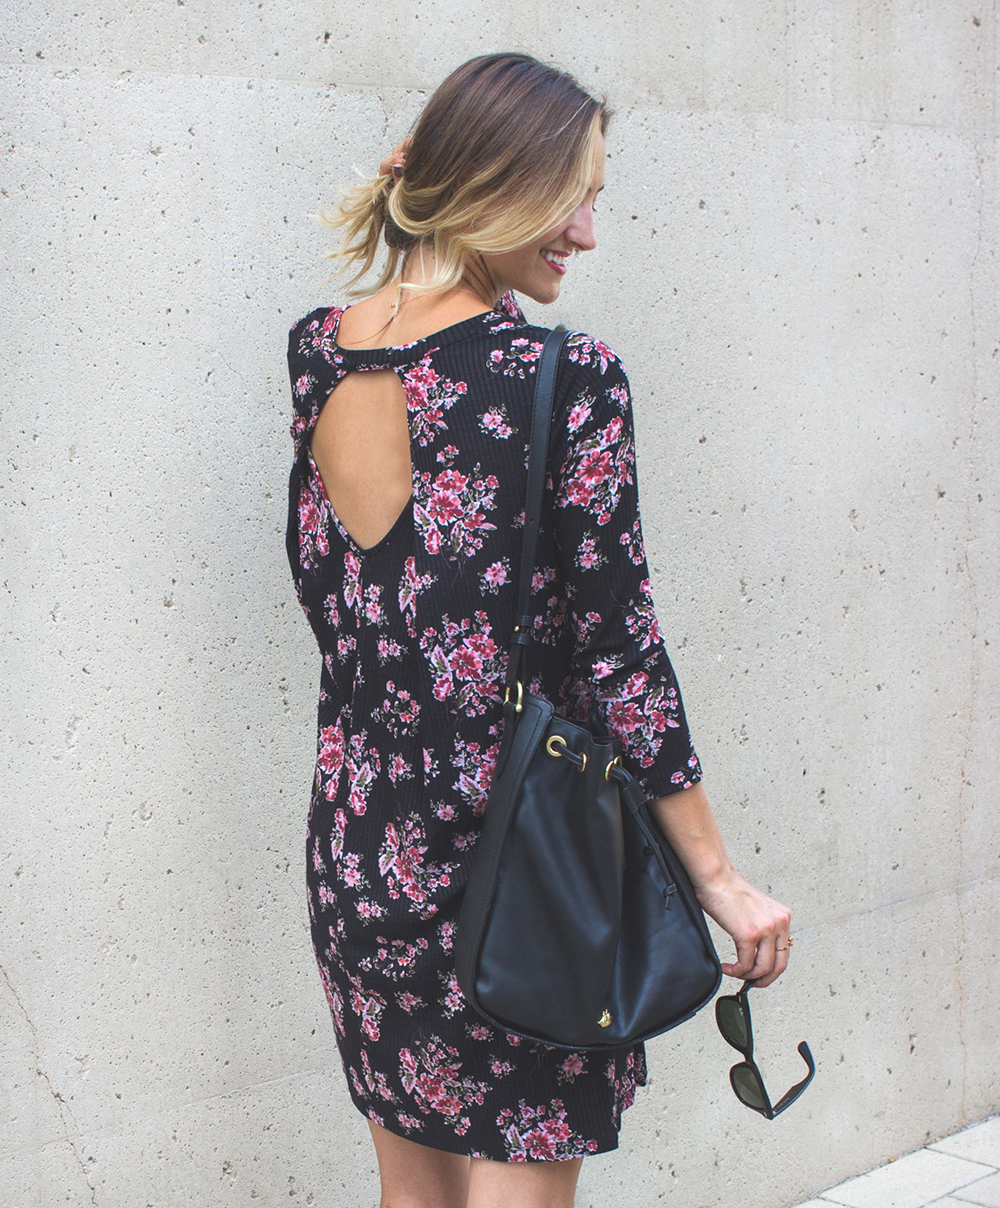 livvyland-blog-olivia-watson-lush-floral-black-shift-dress-brahmin-bucket-bag-ray-ban-wayfarer-sunglasses-madewell-slip-on-mules-2